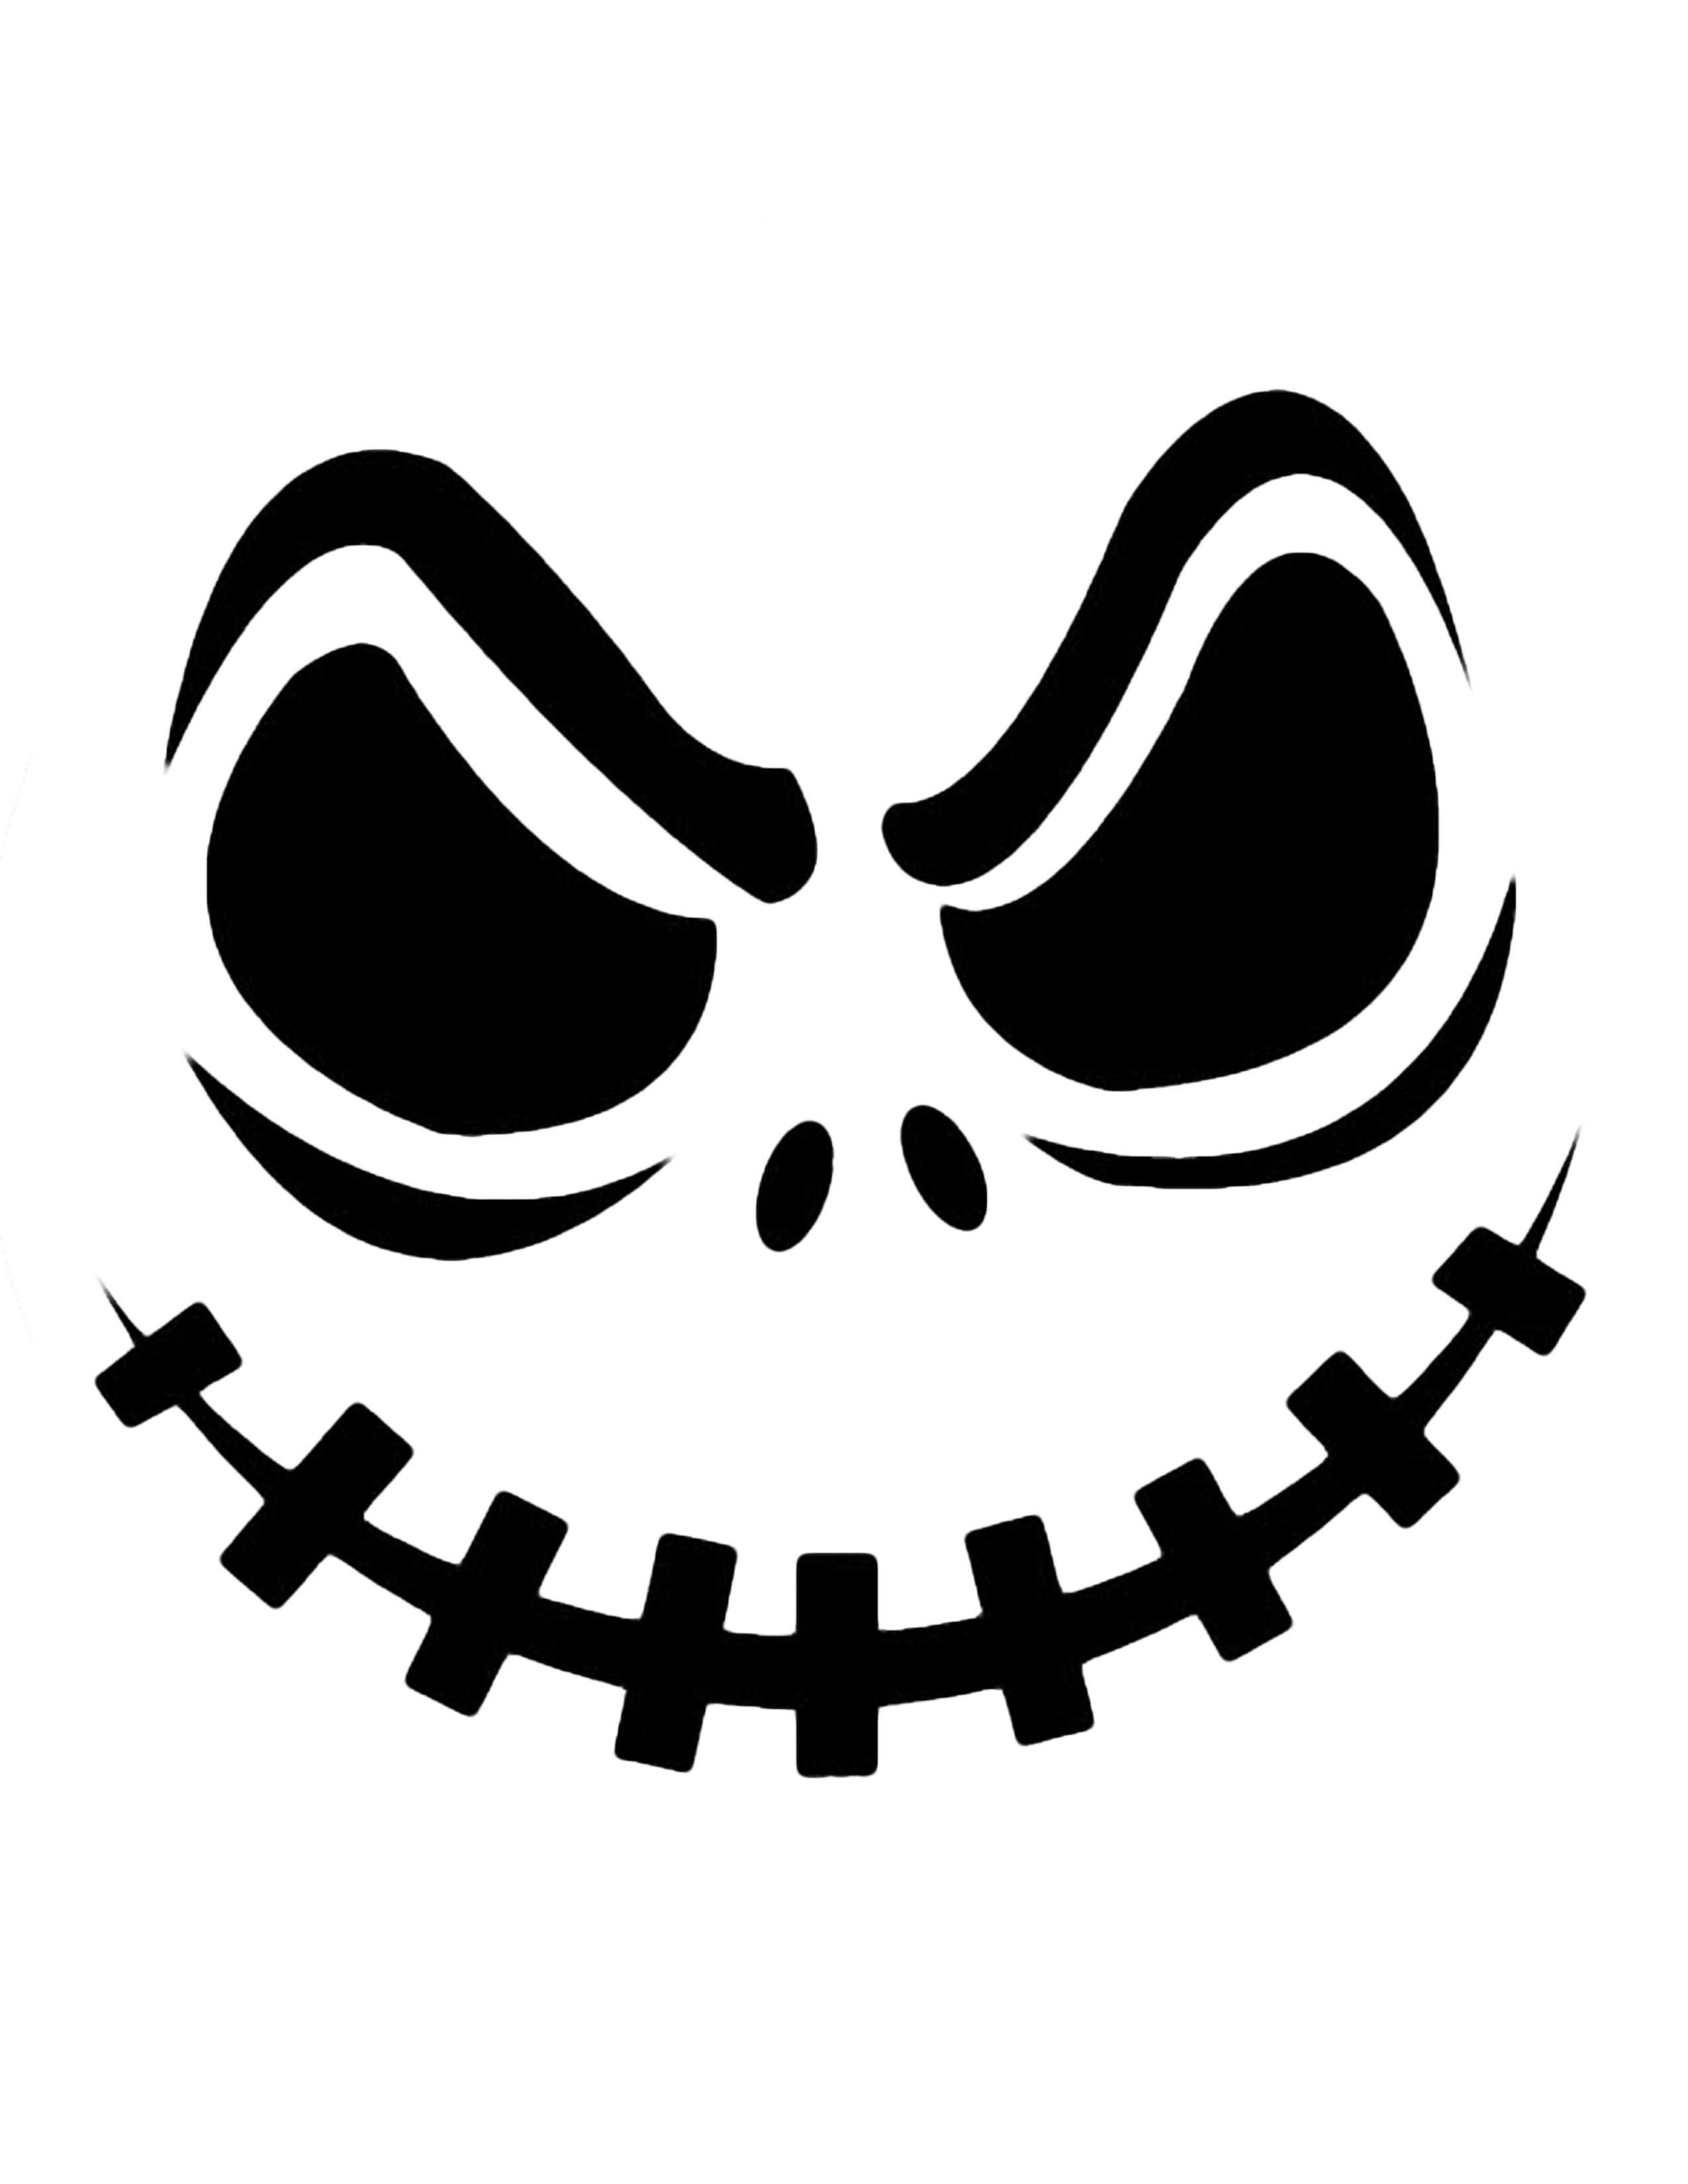 Halloween clipart black and white Awesome Scary Halloween.